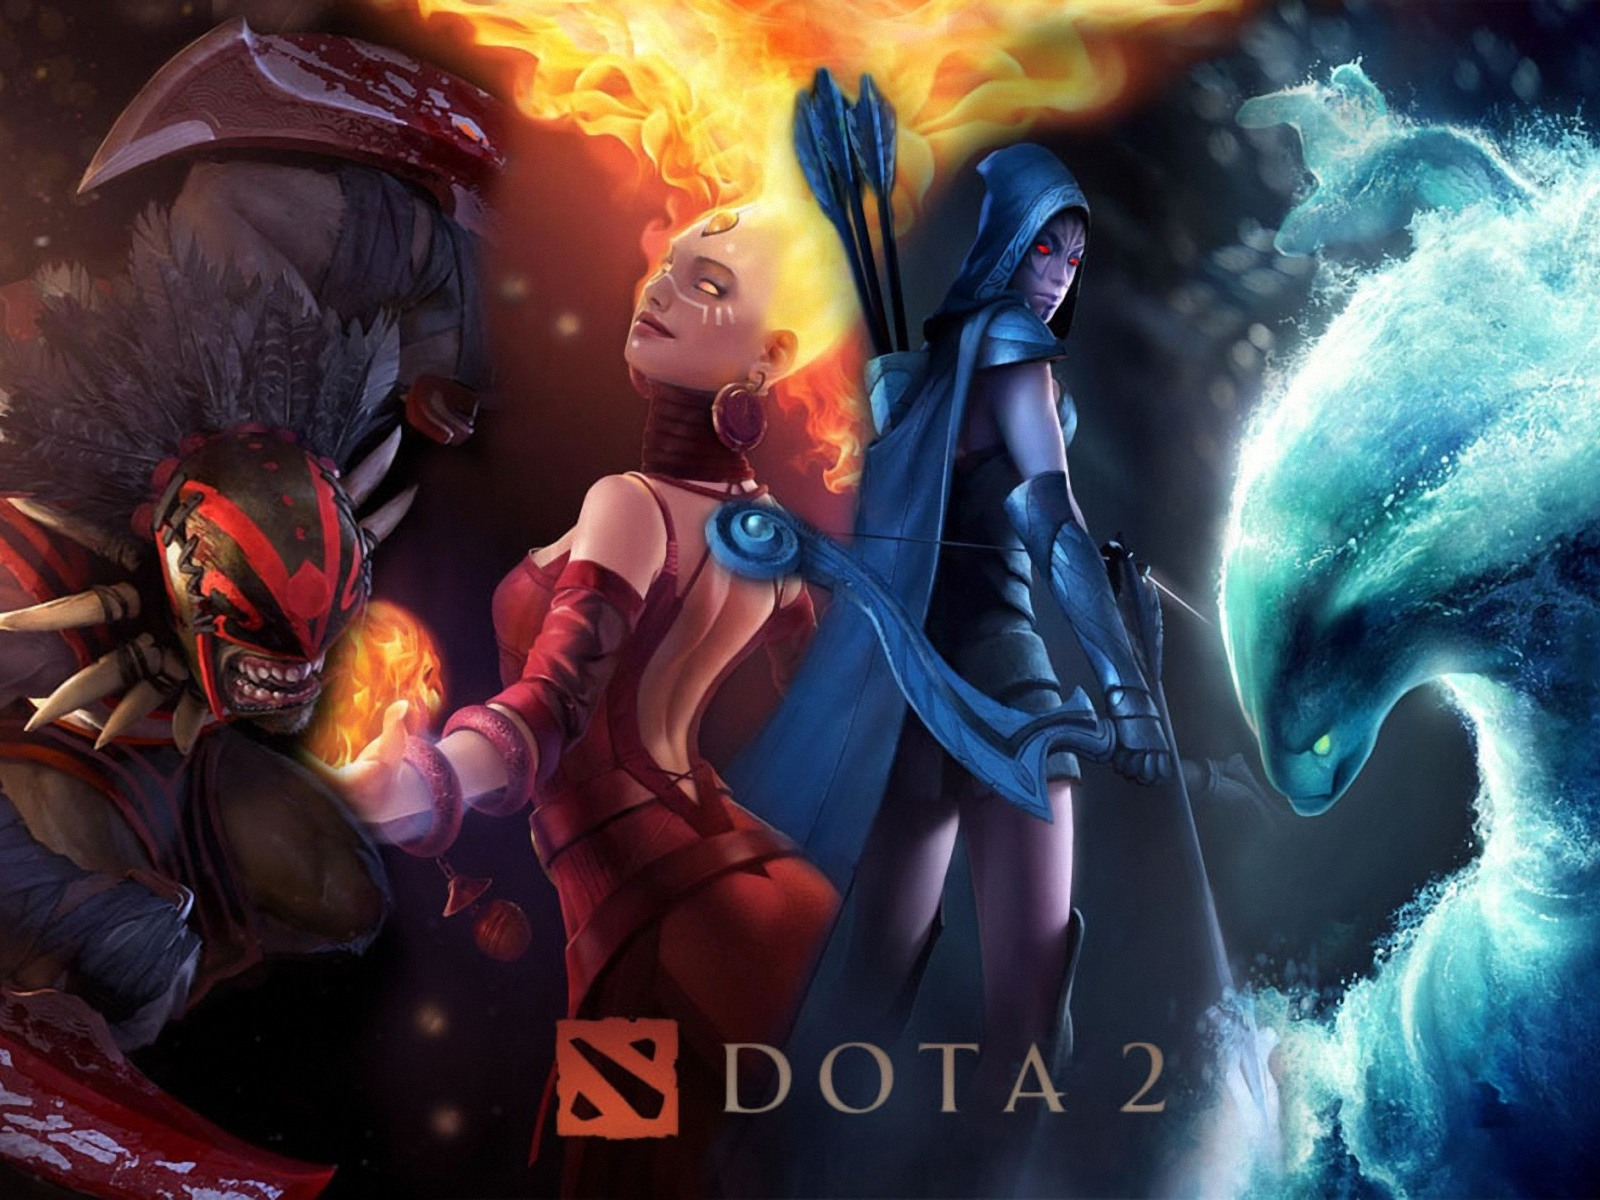 Free Download Dota 2 Wallpaper